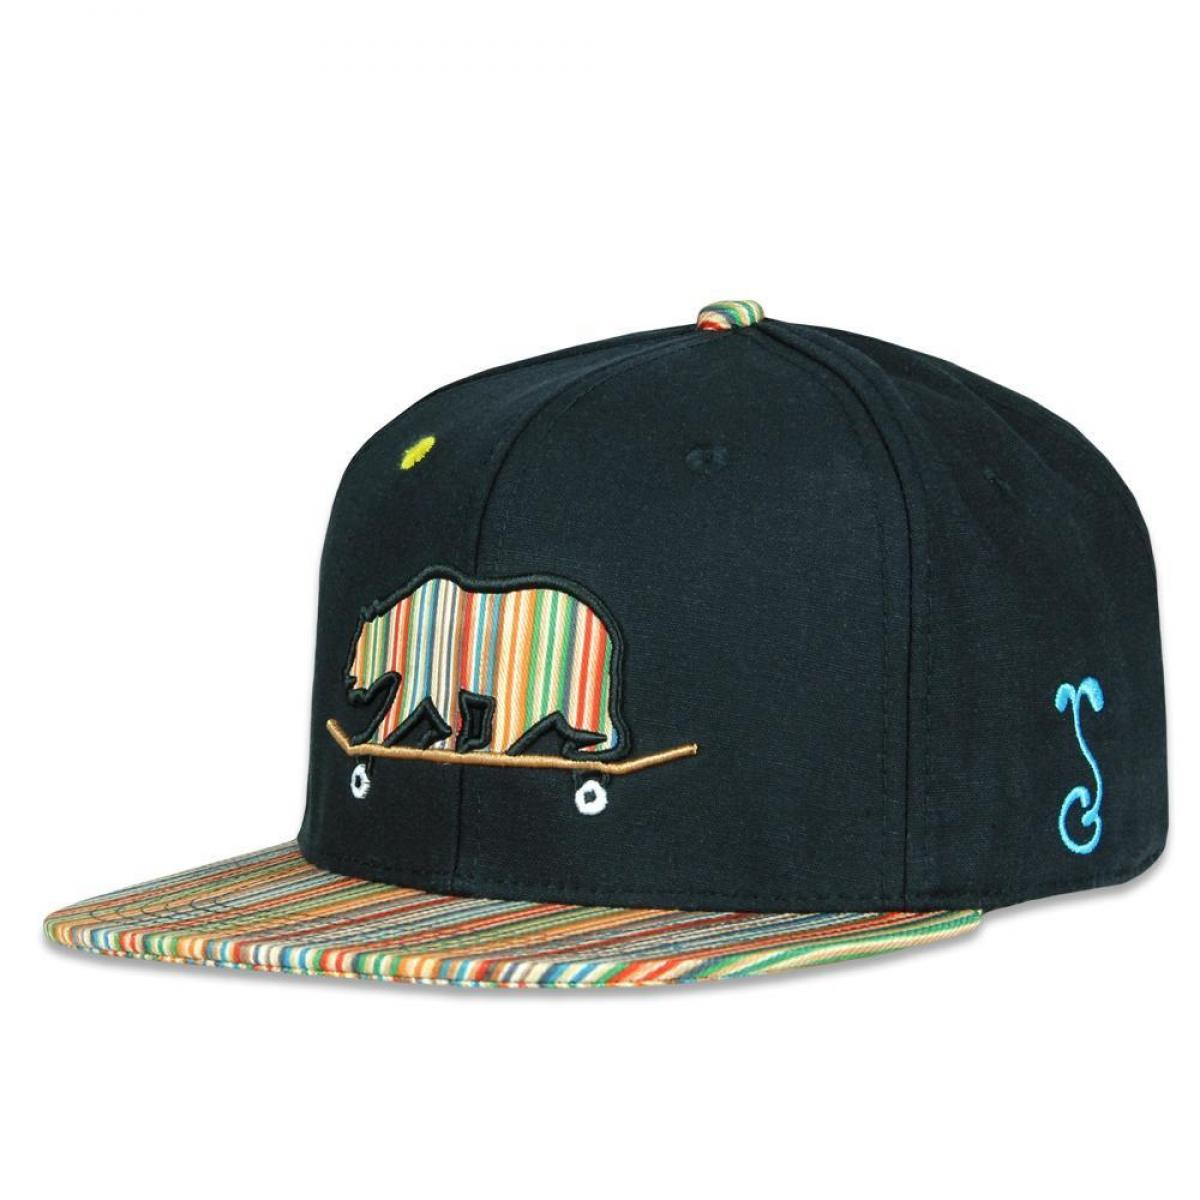 Skateboard Bear Nugs and Bolts Black Hemp Snapback Hat